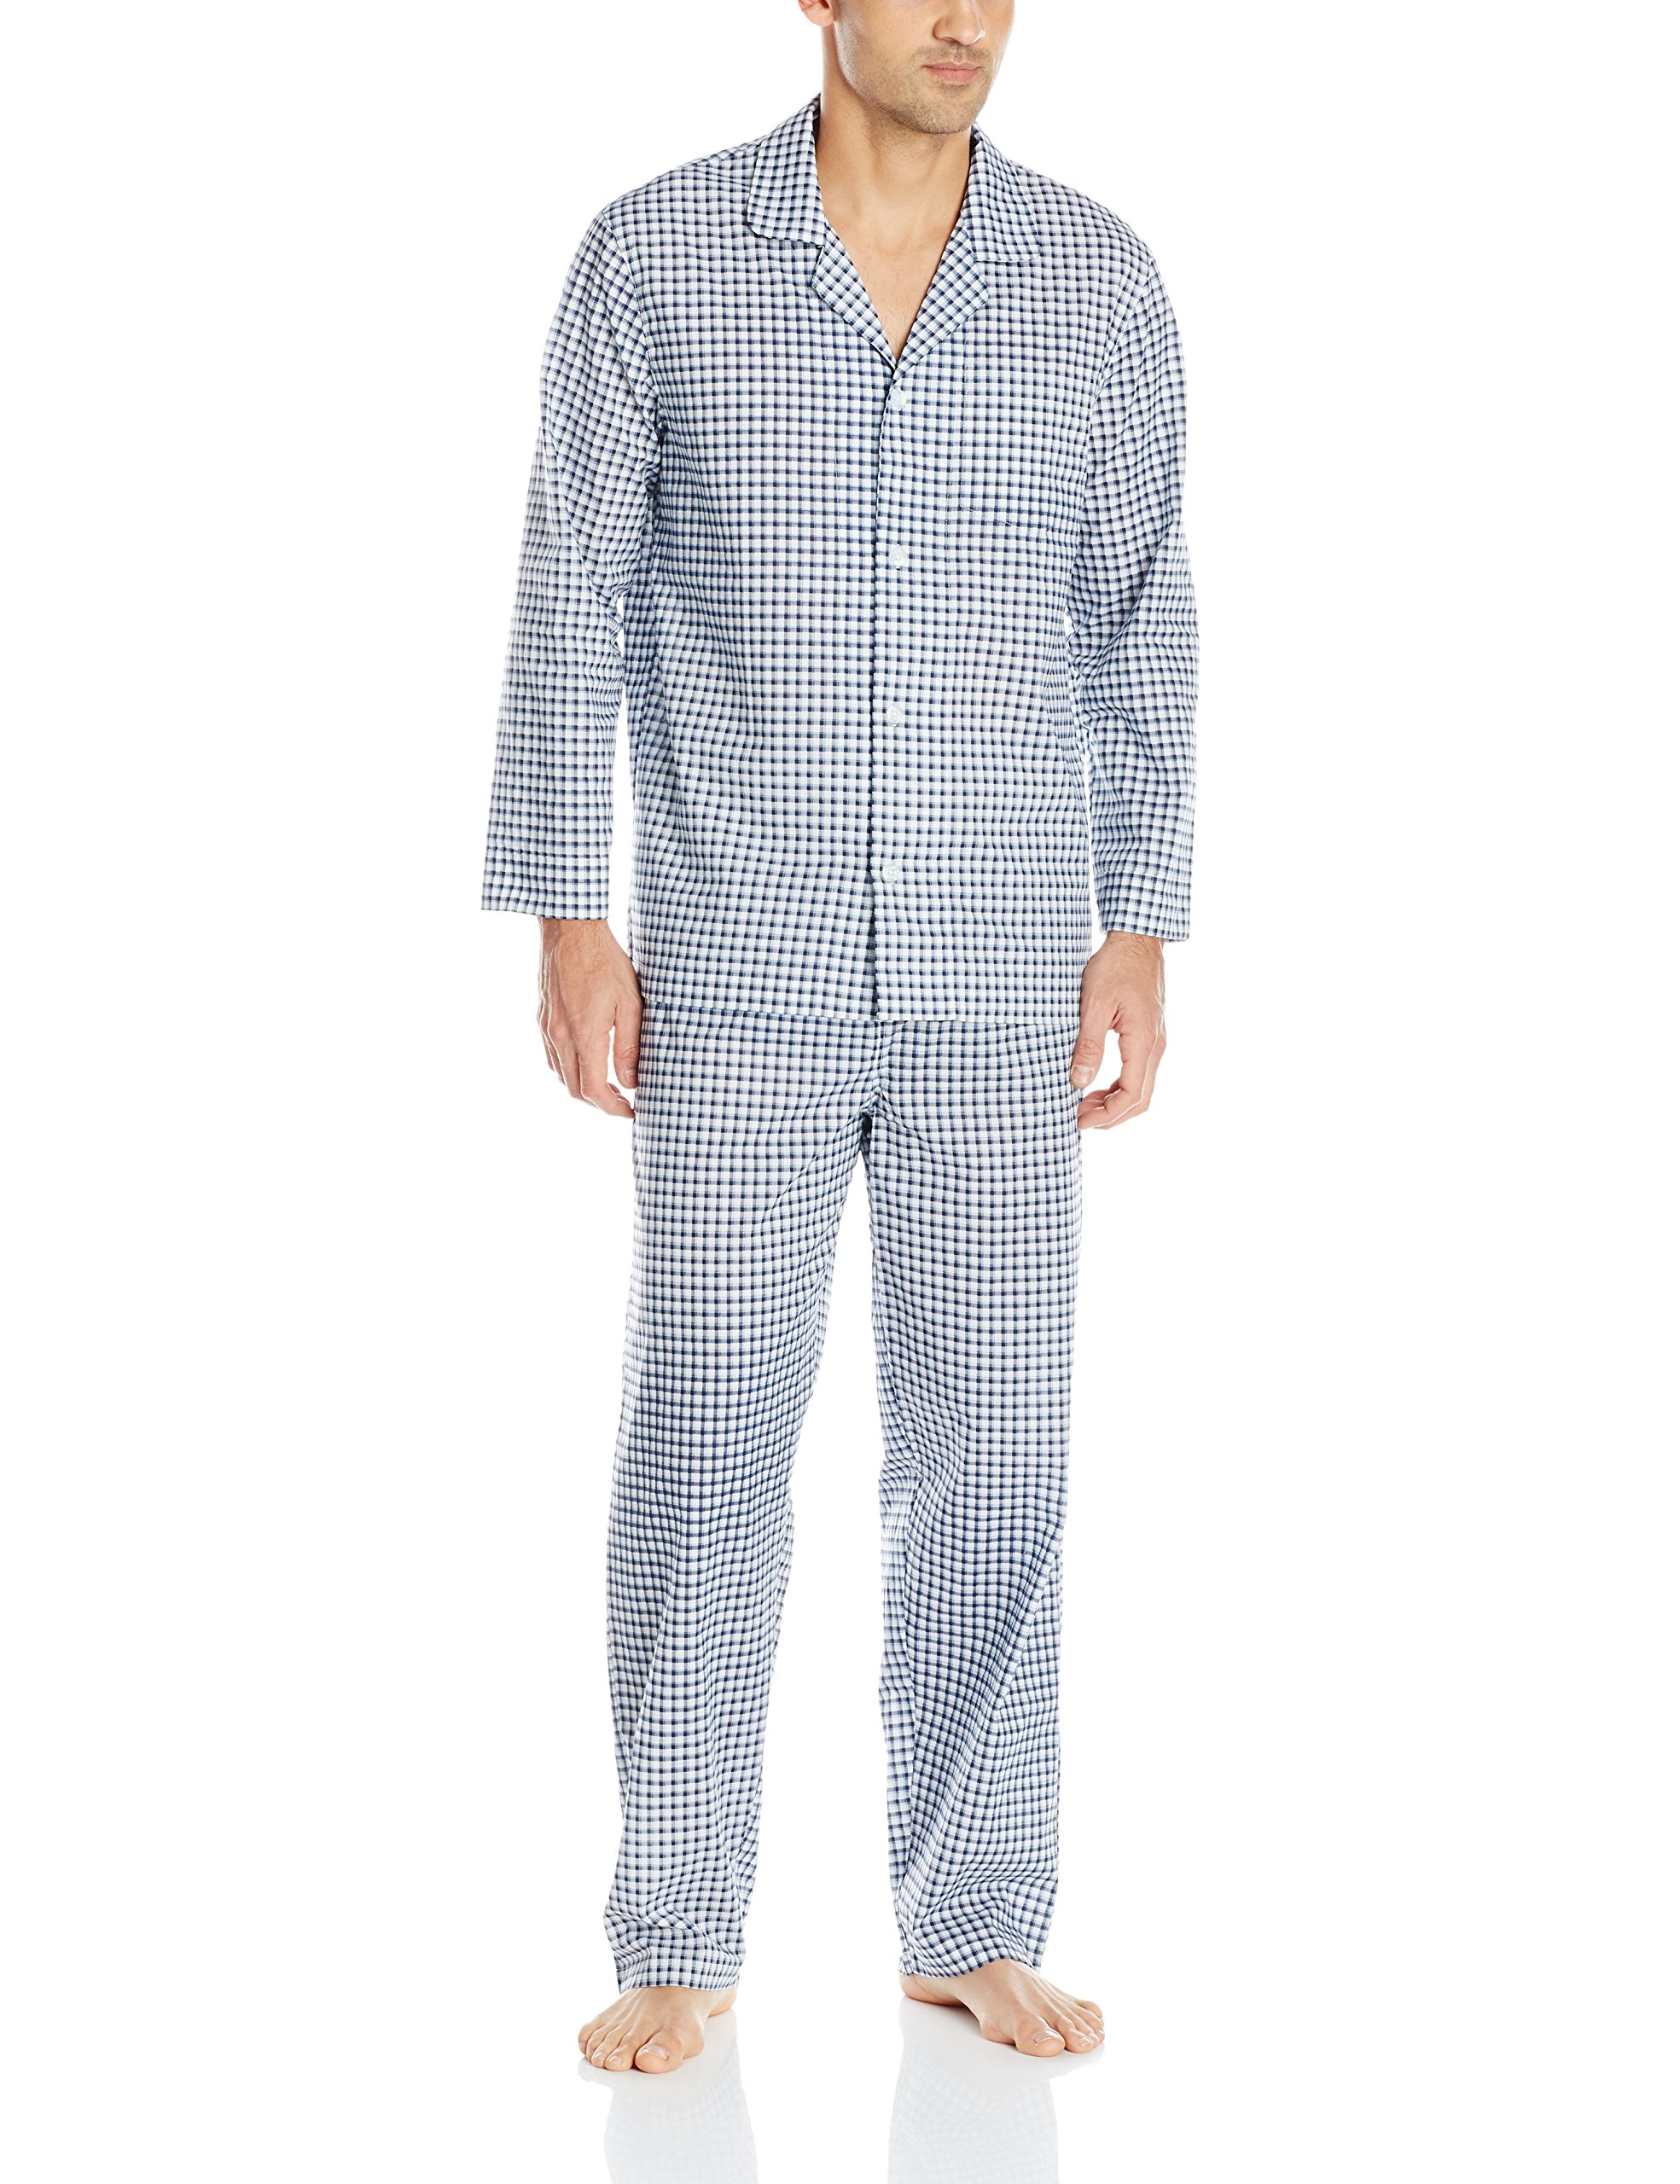 Fruit of the Loom Men's Long Sleeve Broadcloth Pajama Set,Navy Check, Large